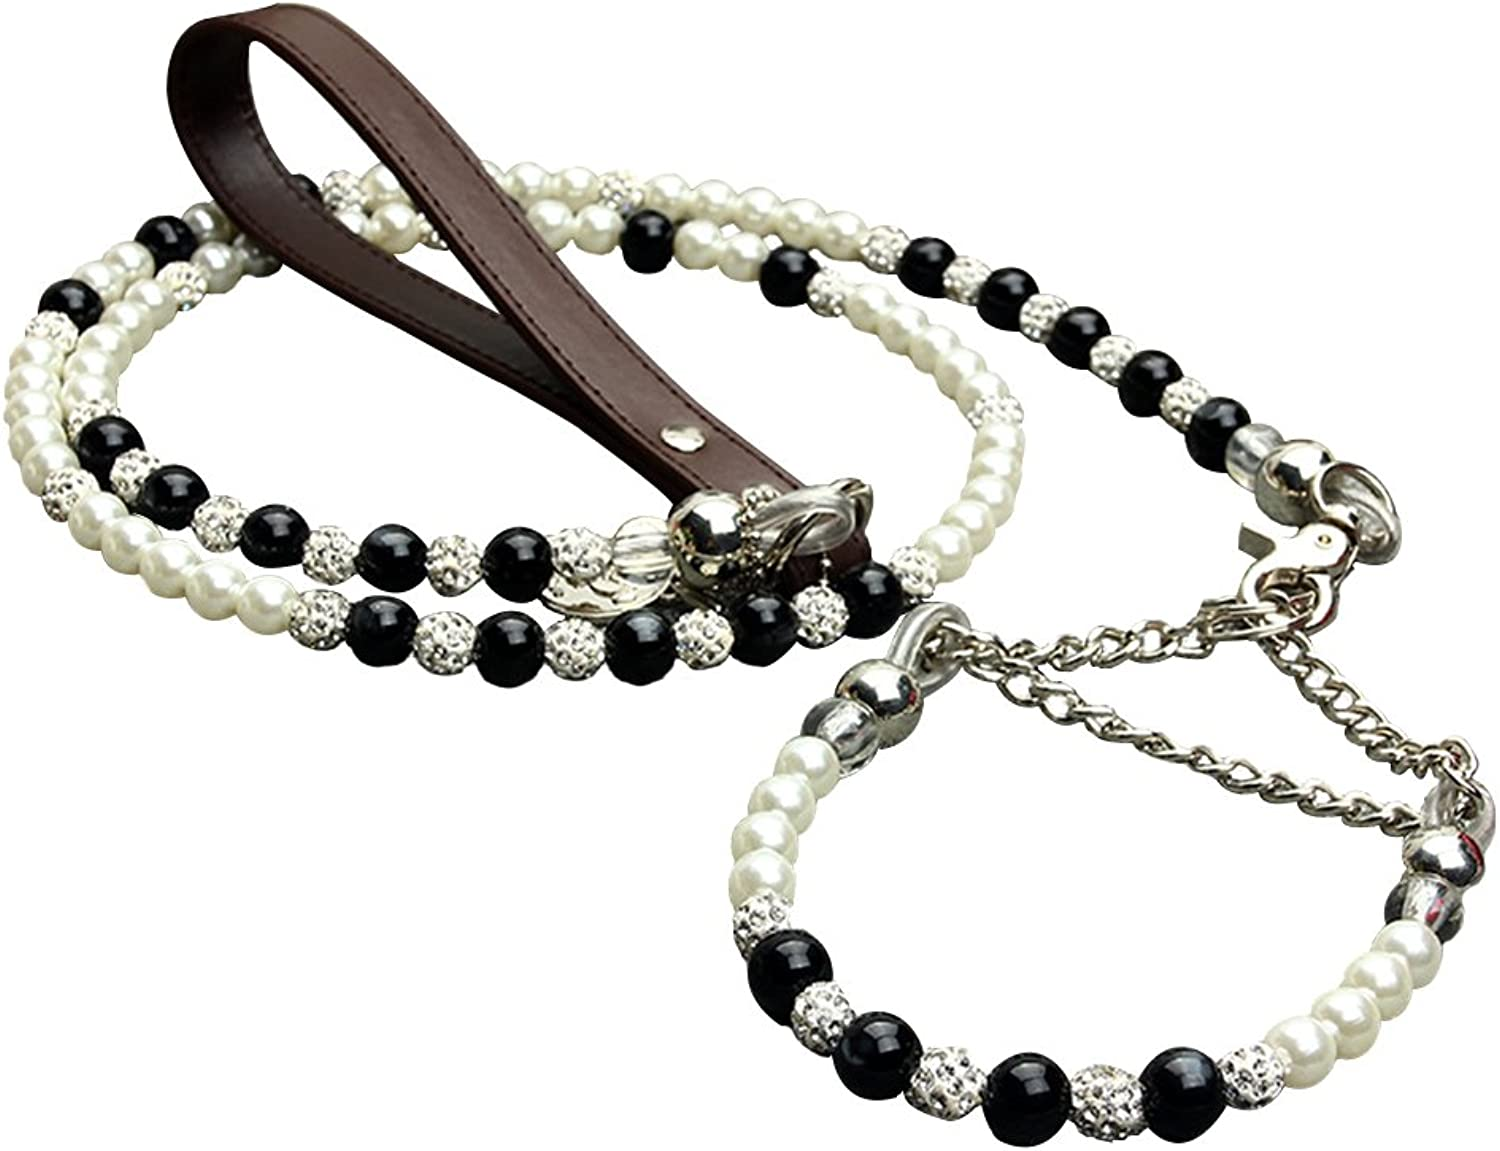 Creation Core Fashion Pearl Adjustable Pet Collar and Leash Set for Small Breeds Puppy Cat Necklace 4 Feet Long Dog Leash (L)